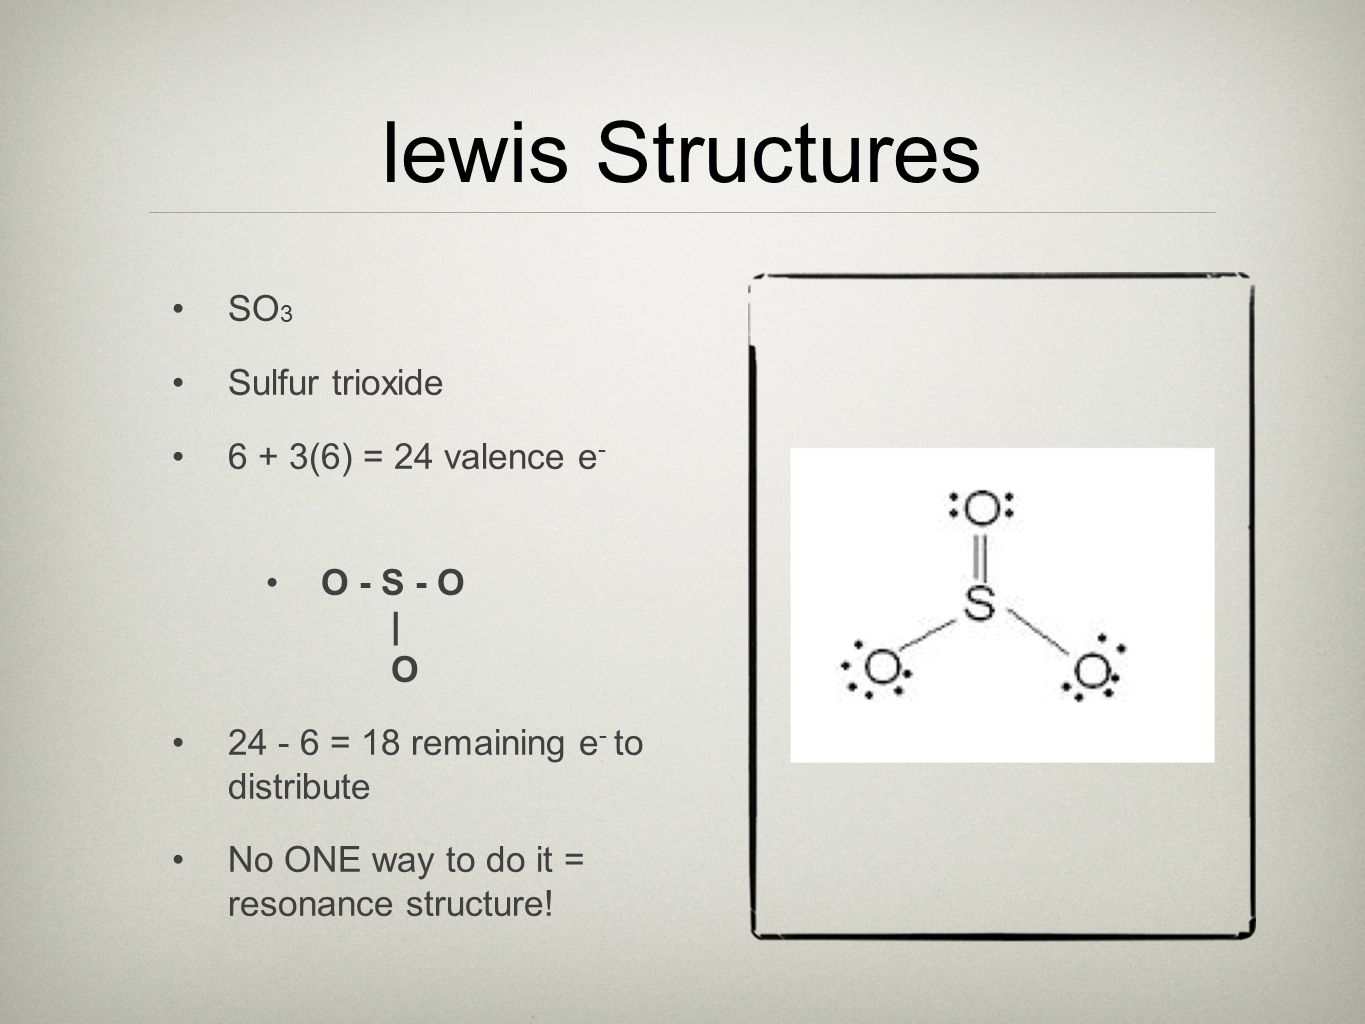 More bonding quick overview of ionic bonding metallic bonding 34 lewis structures so 3 sulfur trioxide 6 36 24 valence e o s o o 24 6 18 remaining e to distribute no one way to do it resonance pooptronica Choice Image